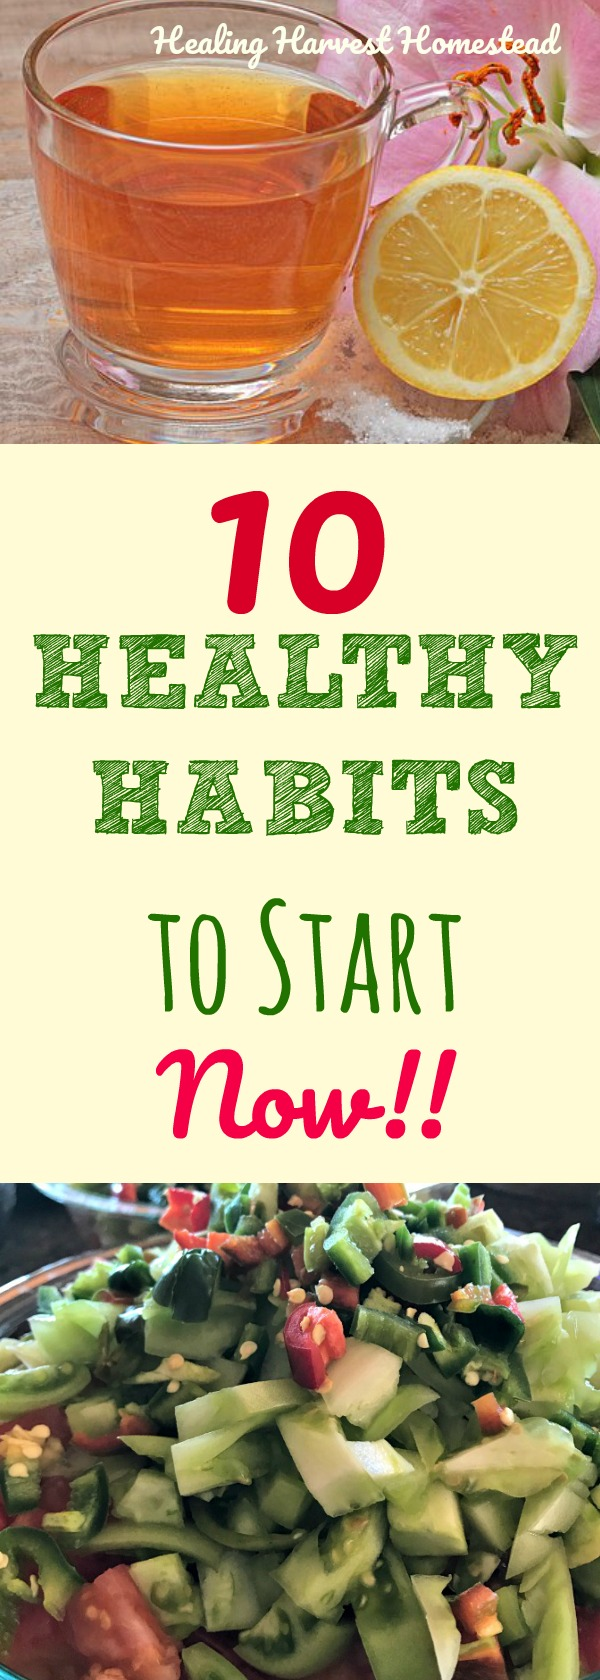 It may be the New Year and time to set goals and start some different good habits...but these 10 Healthy Habits are habits for your health you should start right NOW, no matter what time of the year it is! Get your body, mind, and soul healthy by starting these 10 things right now! New habits are great---as long as they add to your life and health!